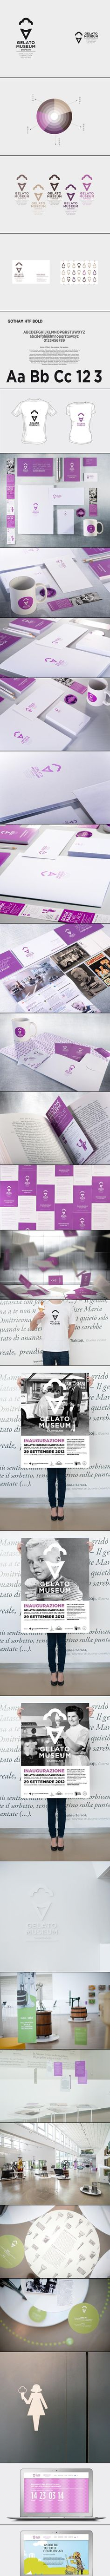 Gelato Museum | #stationary #corporate #design #corporatedesign #identity #branding #marketing < repinned by www.BlickeDeeler.de | Take a look at www.LogoGestaltung-Hamburg.de